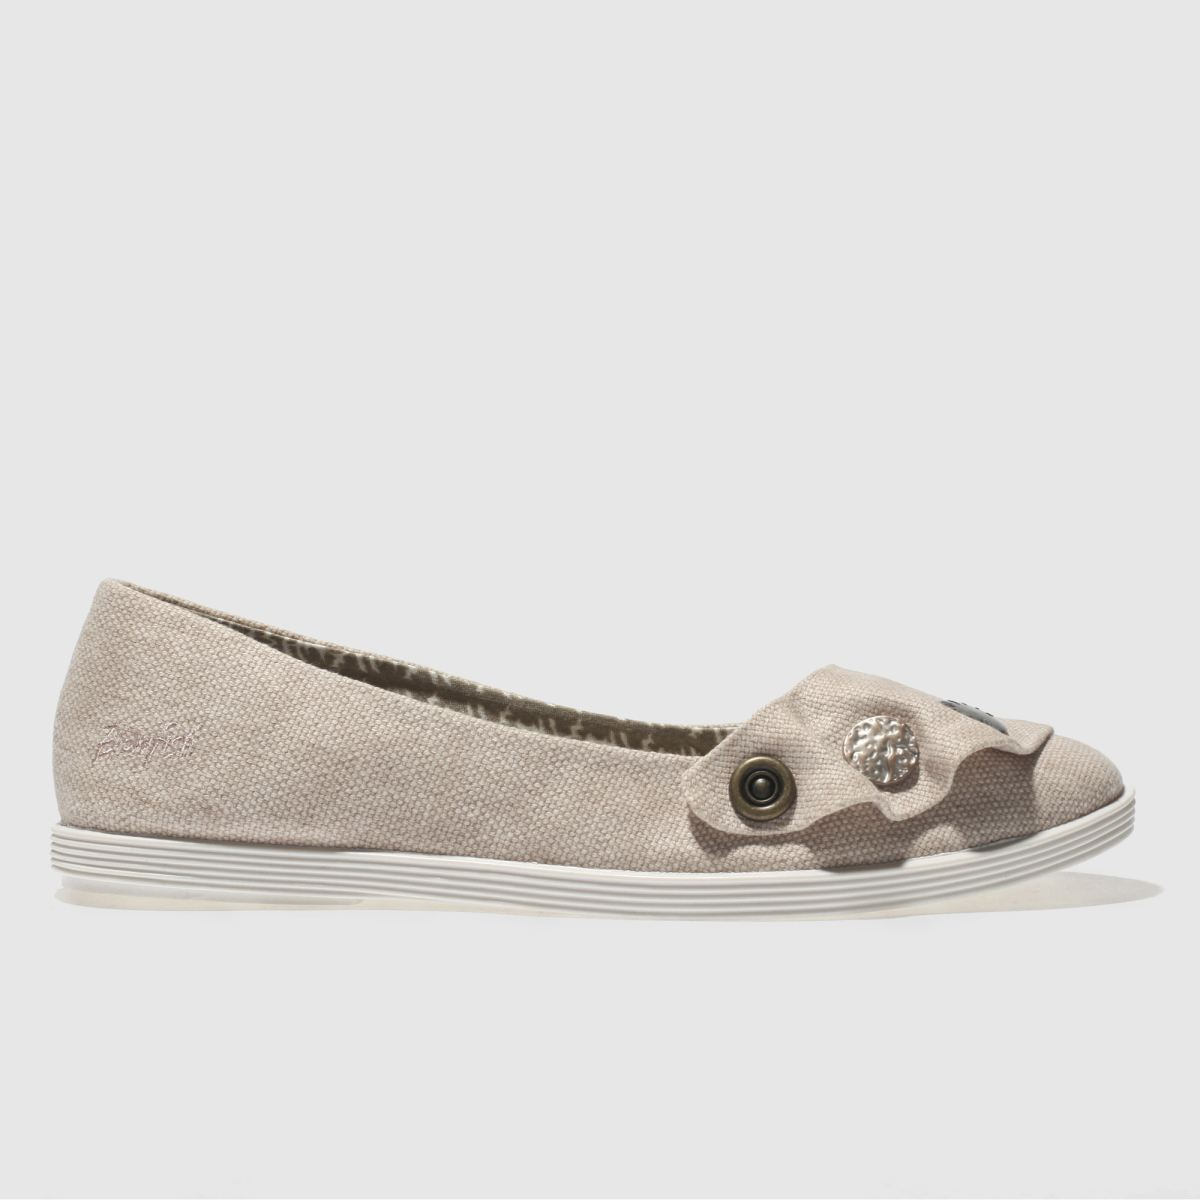 Blowfish Stone Gayls Flat Shoes